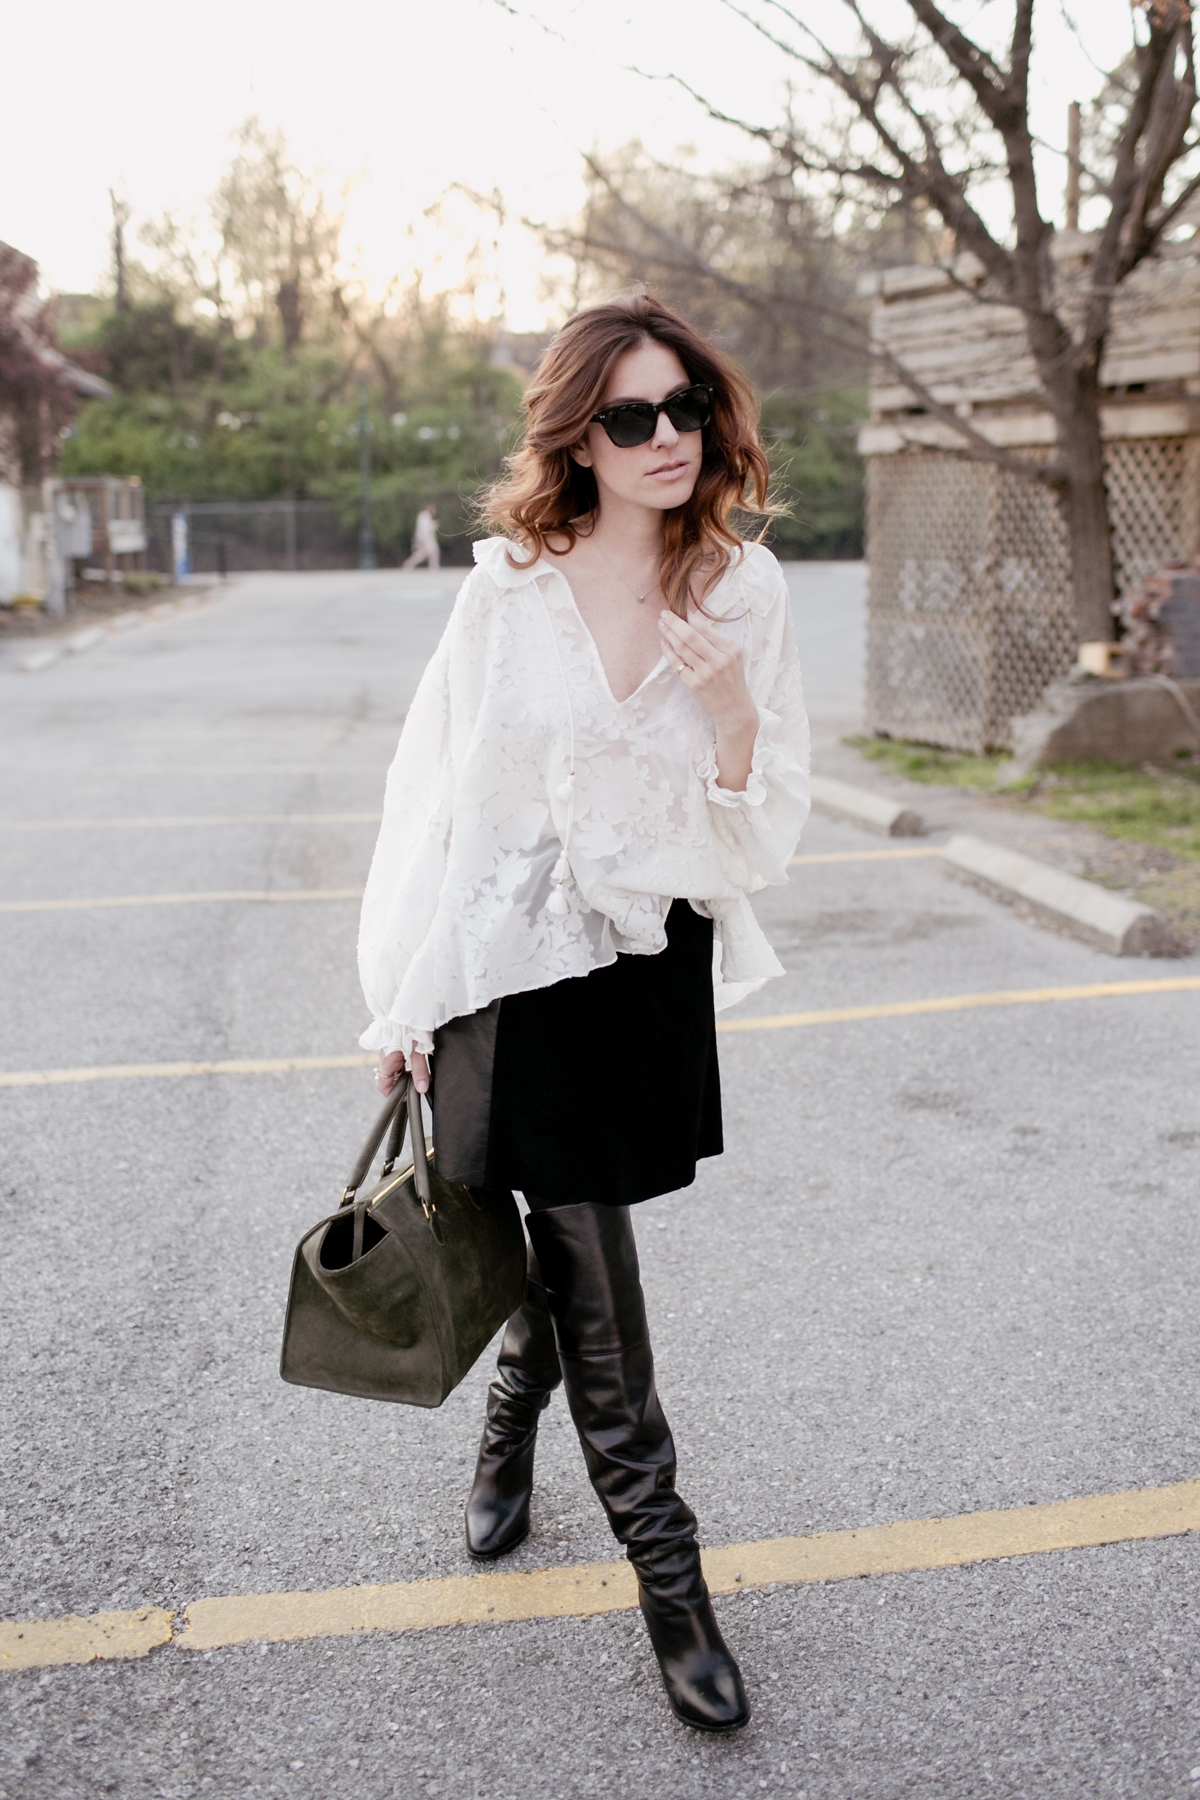 Eldridge Edit_Anna_E_Cottrell_Tulip_Louise_Fashion_Blogger_White_Rachel_Zoe_Blouse_Suede_and_Leather_Veda_Mini_Skirt_Ralph_Lauren_Over_the_knee_boot_spring_summer_trends_2016_salt_sunglasses_vintage_11.jpg